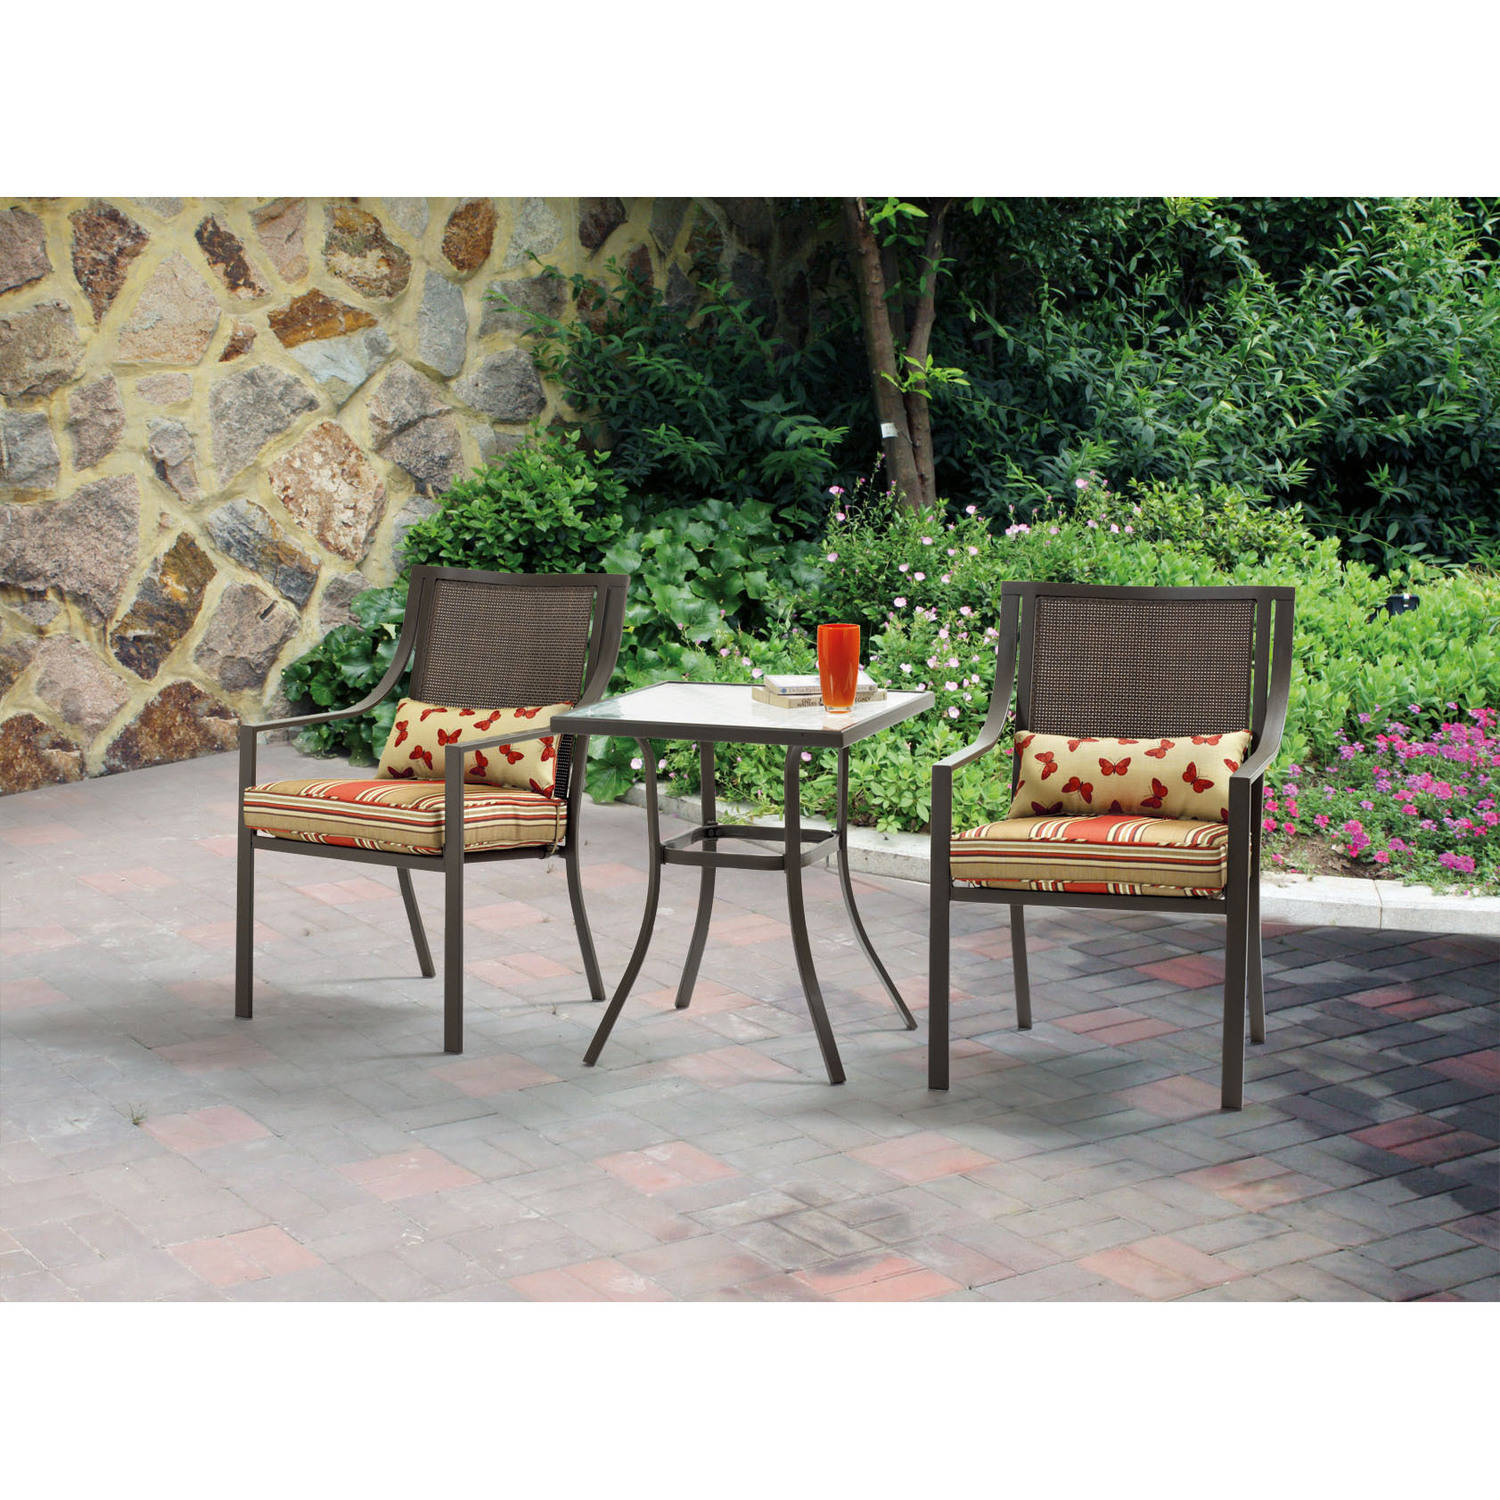 3 Piece Patio Table And Chairs